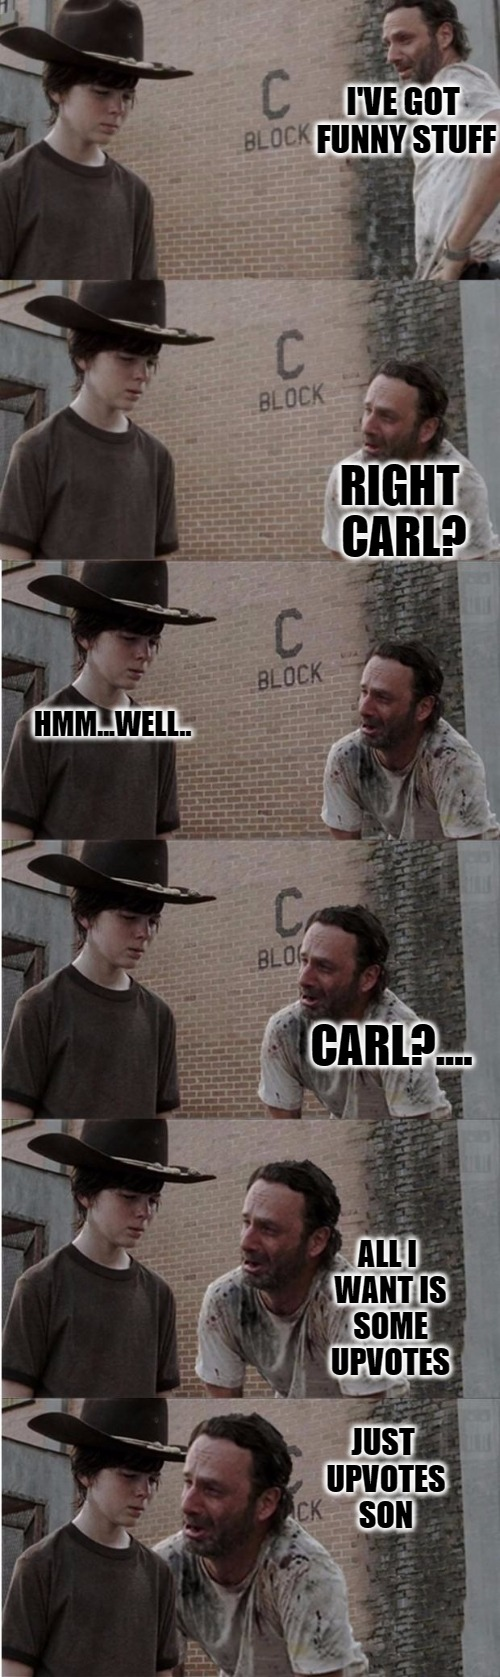 Rick and Carl Longer Meme | I'VE GOT FUNNY STUFF JUST UPVOTES SON RIGHT CARL? HMM...WELL.. CARL?.... ALL I WANT IS SOME UPVOTES | image tagged in memes,rick and carl longer | made w/ Imgflip meme maker